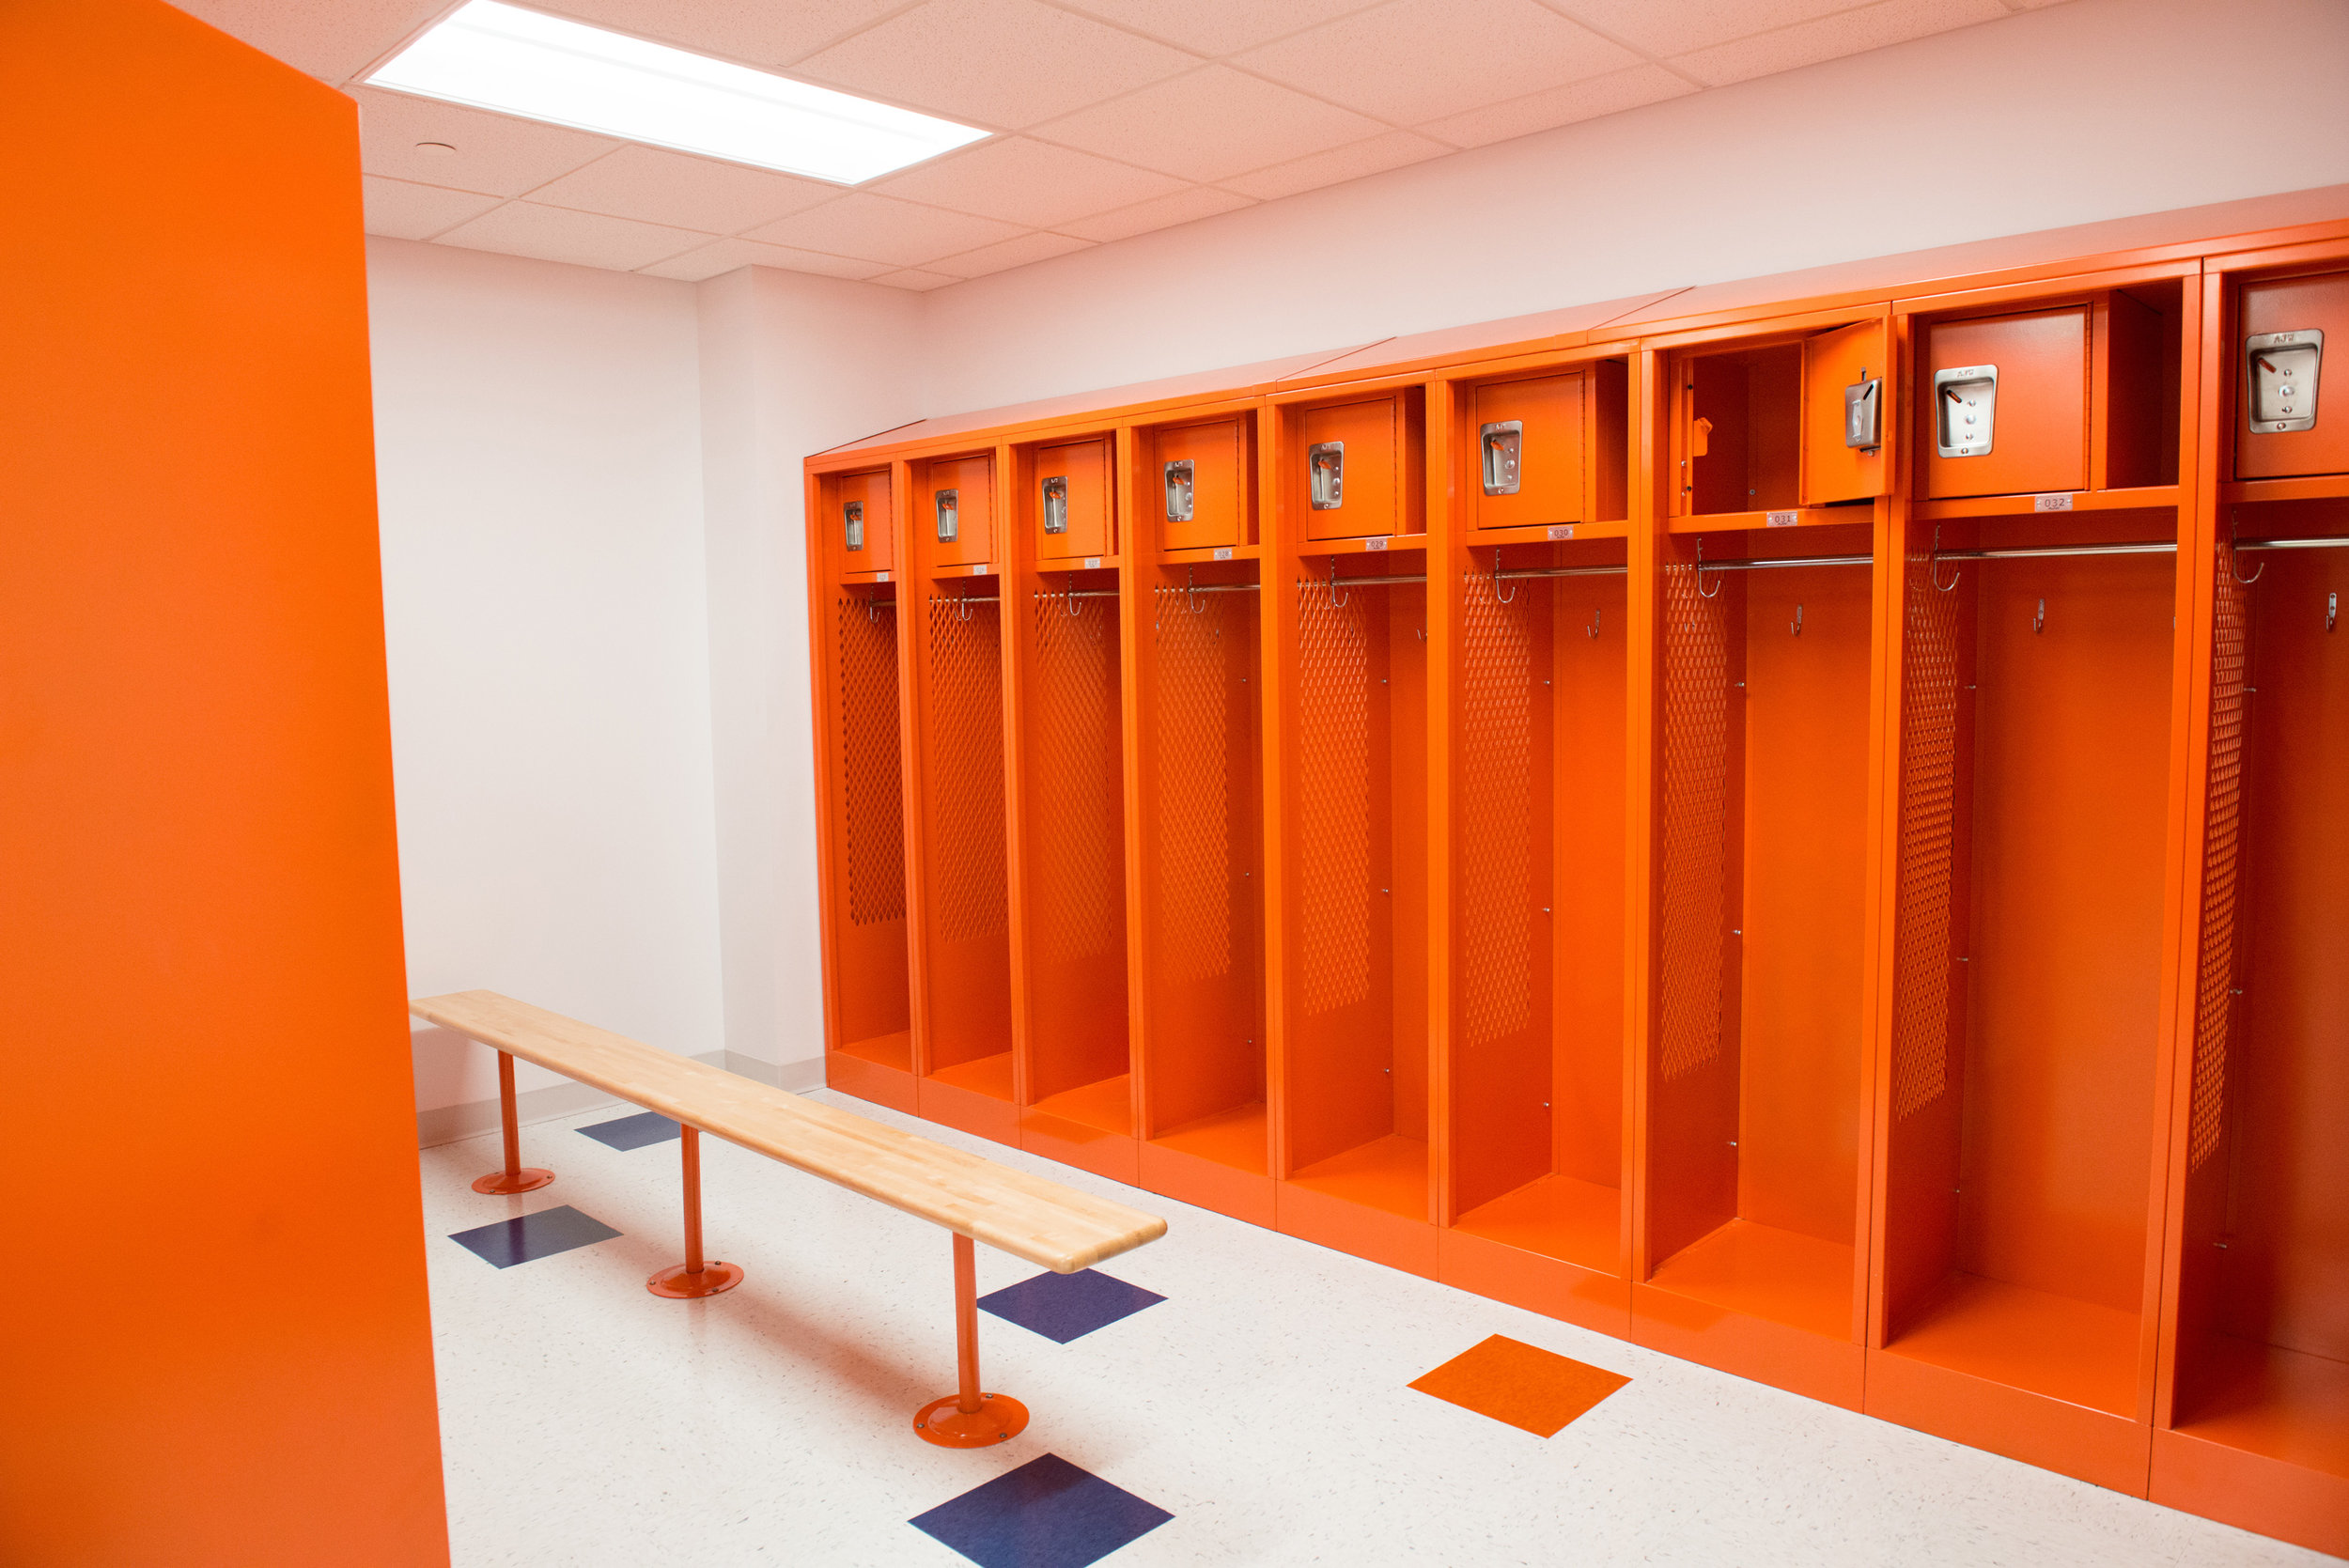 SUNY New Paltz - Locker Room Renovations